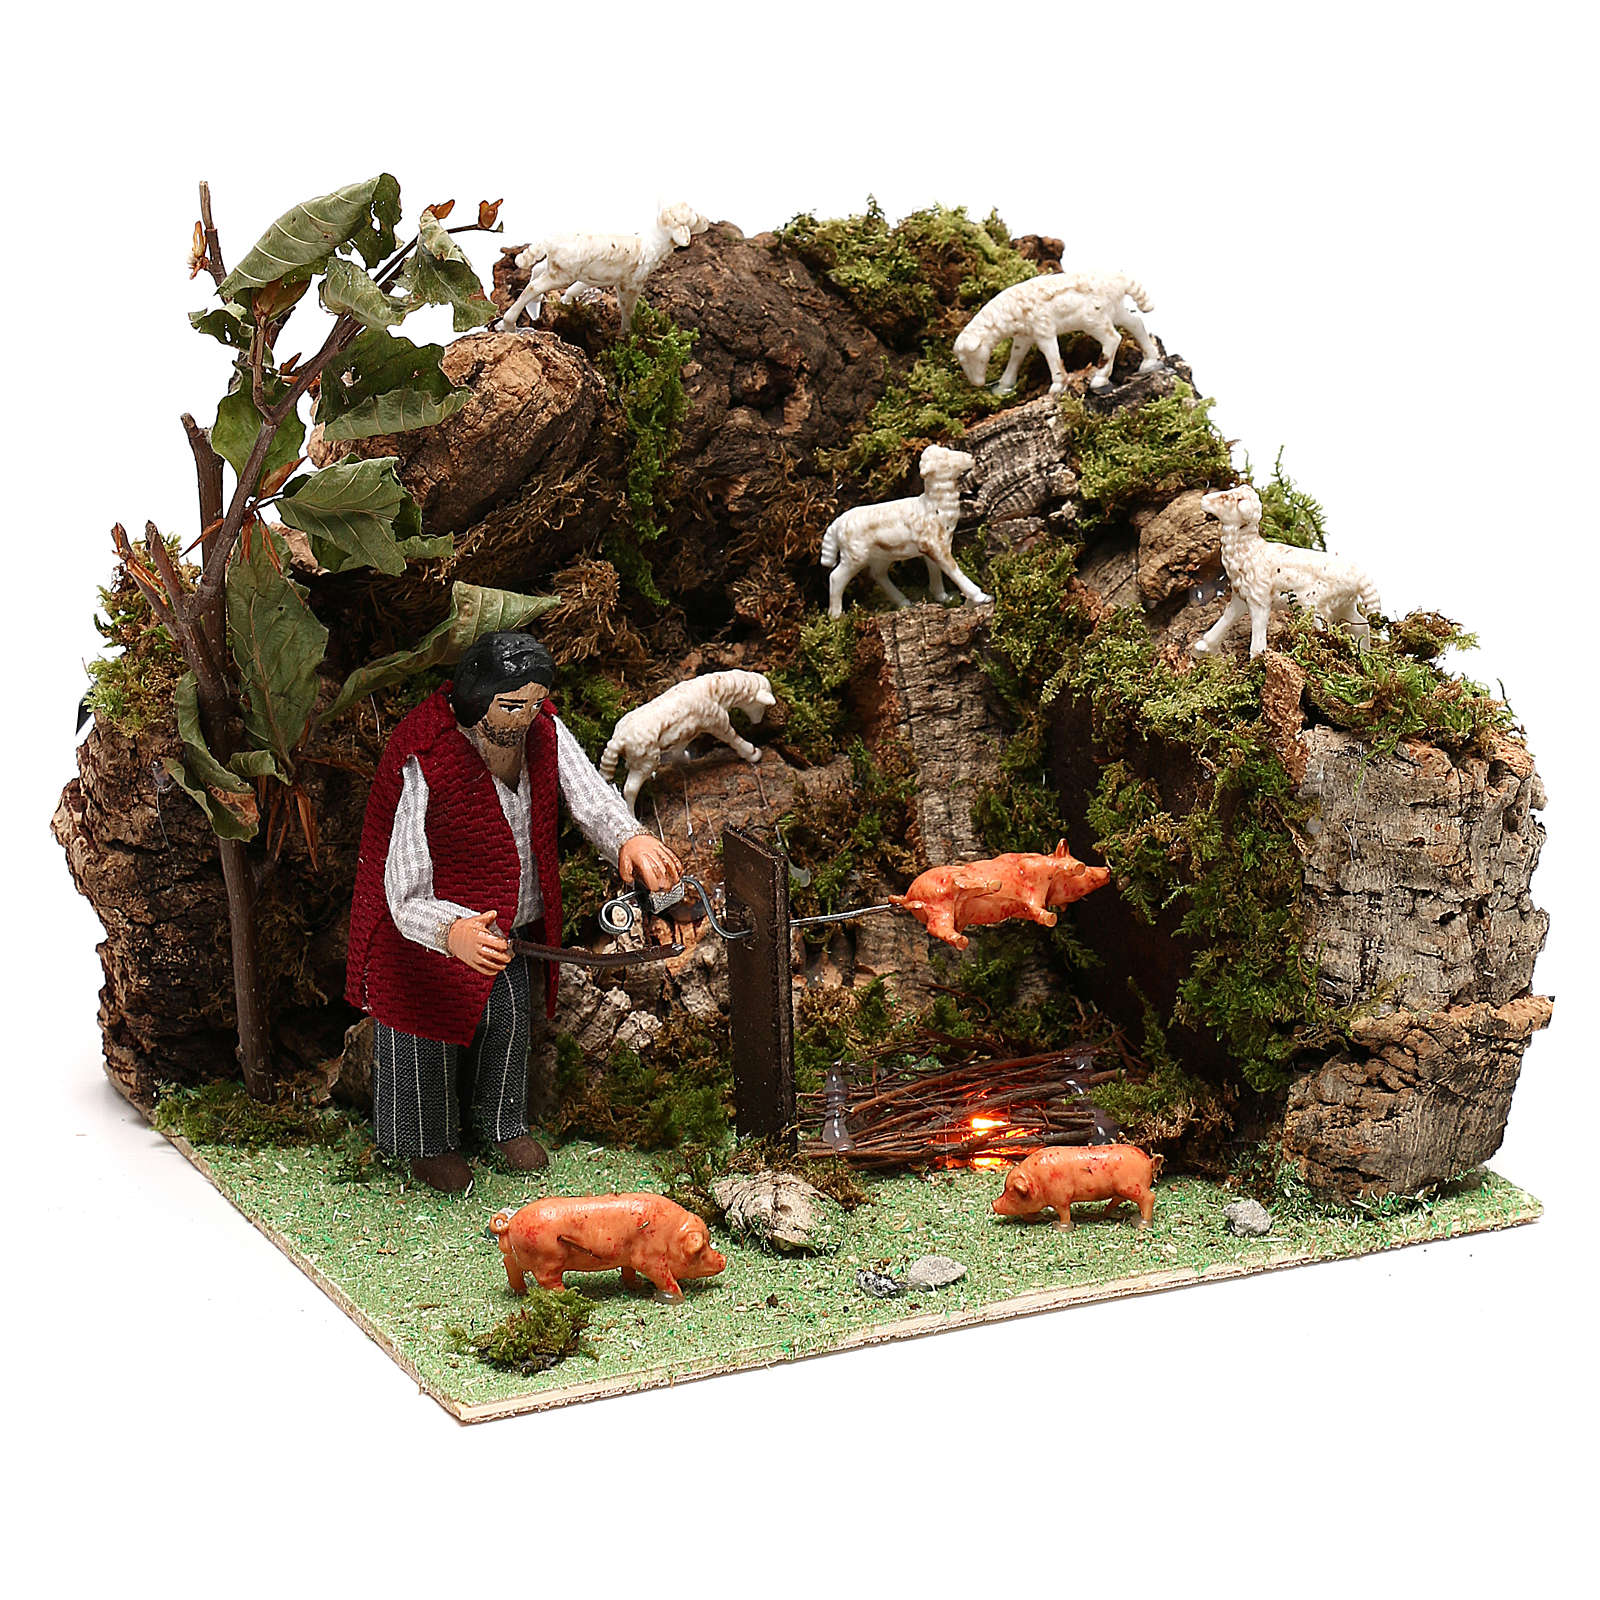 Neapolitan nativity shepherd and roasted pork with movement 10 cm 4